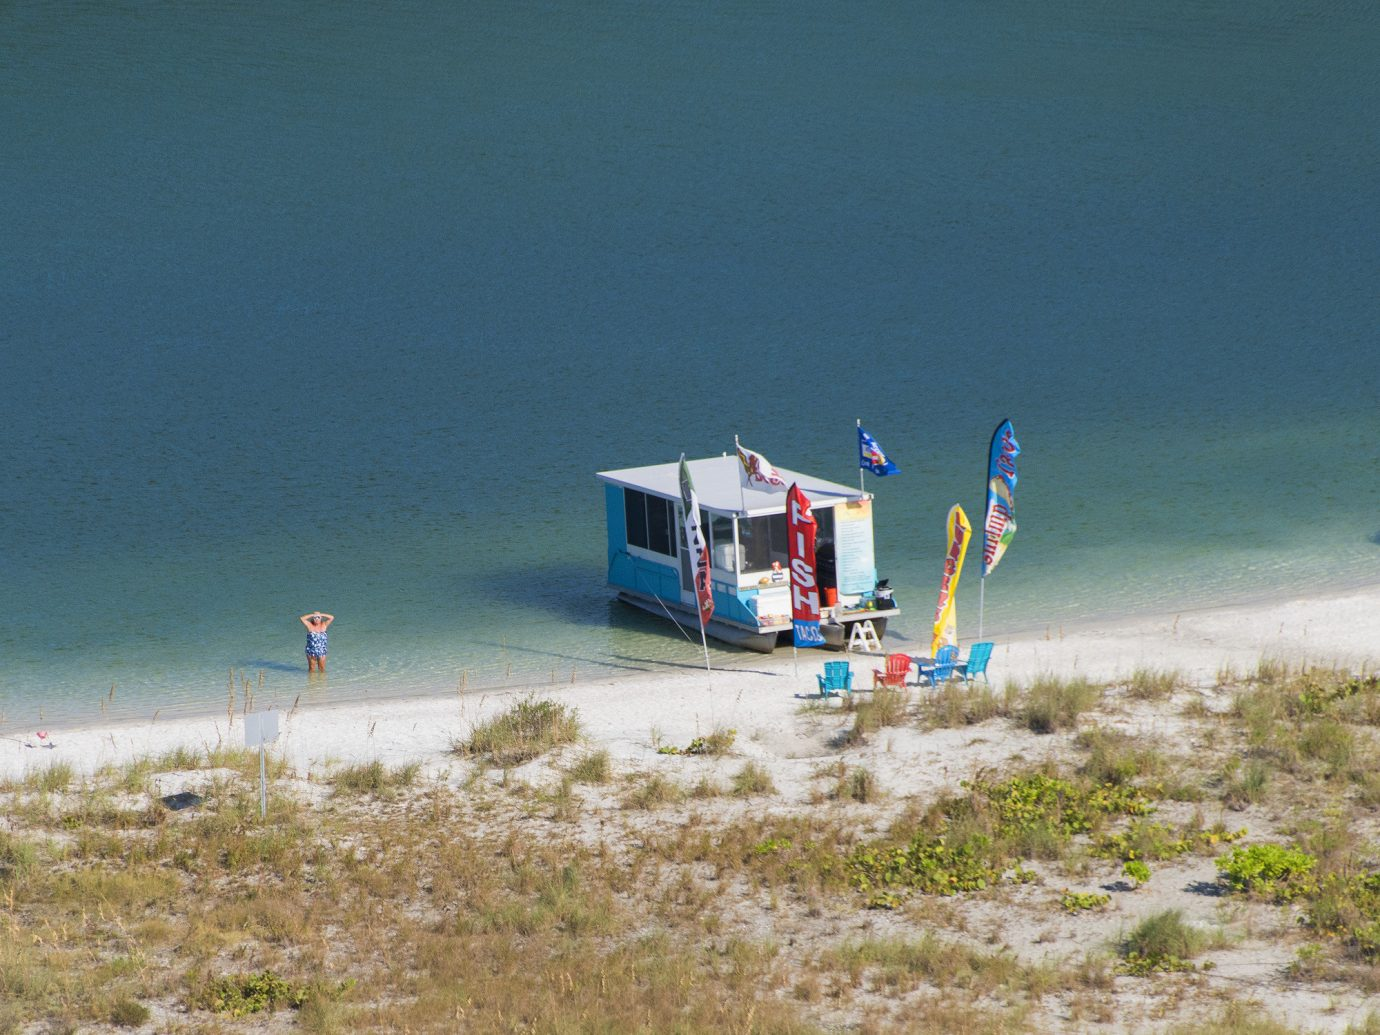 Trip Ideas grass outdoor Beach Sea atmosphere of earth Coast vehicle wind boating Boat shore